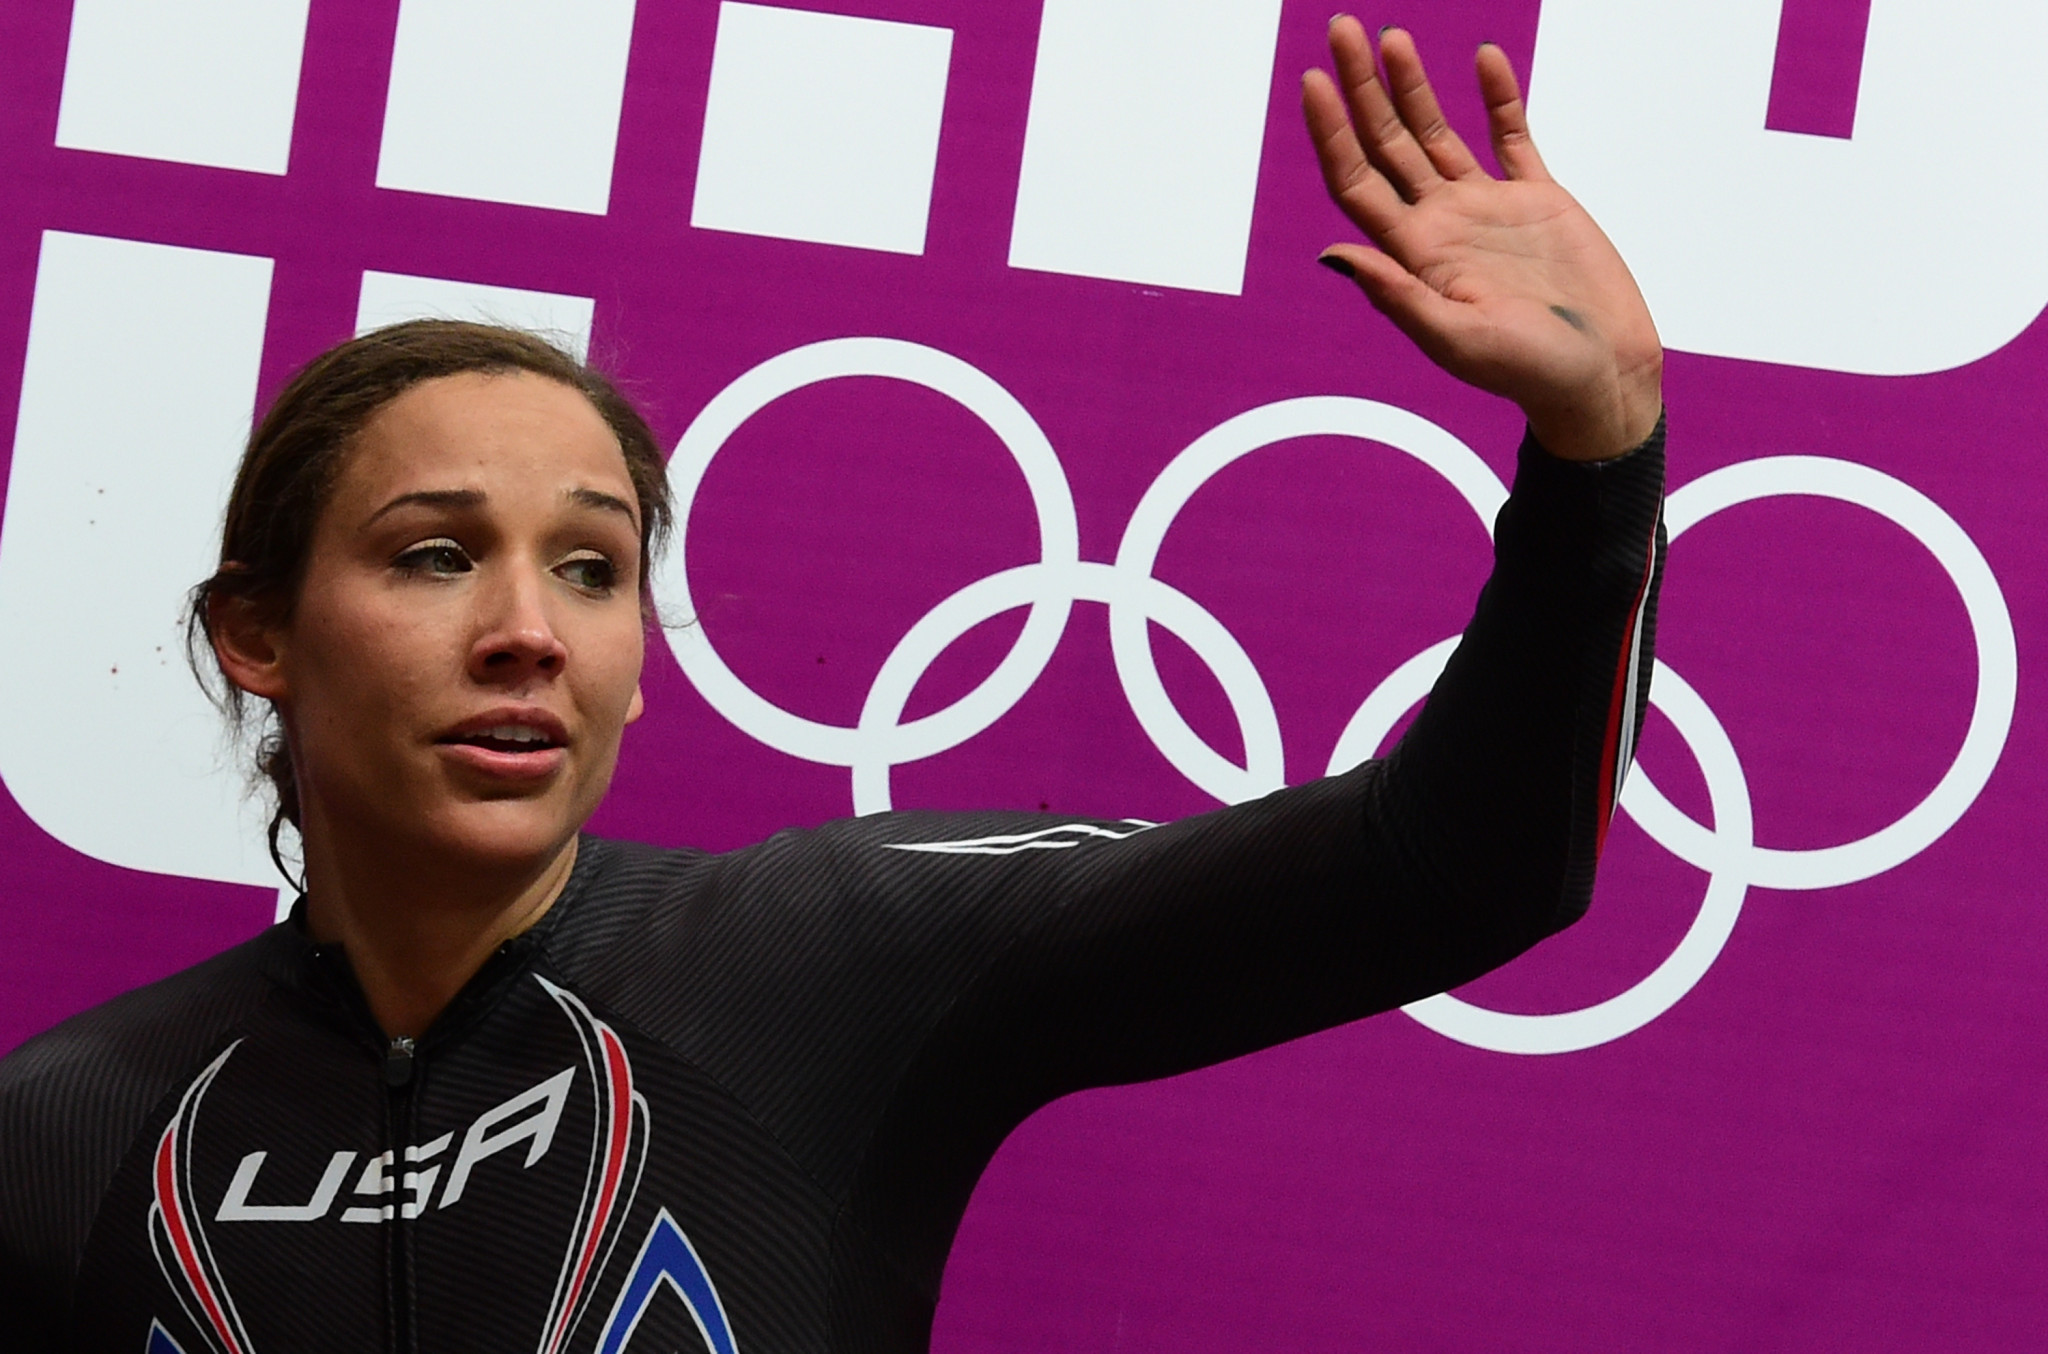 Summer and Winter Olympian Jones returns to US bobsleigh squad